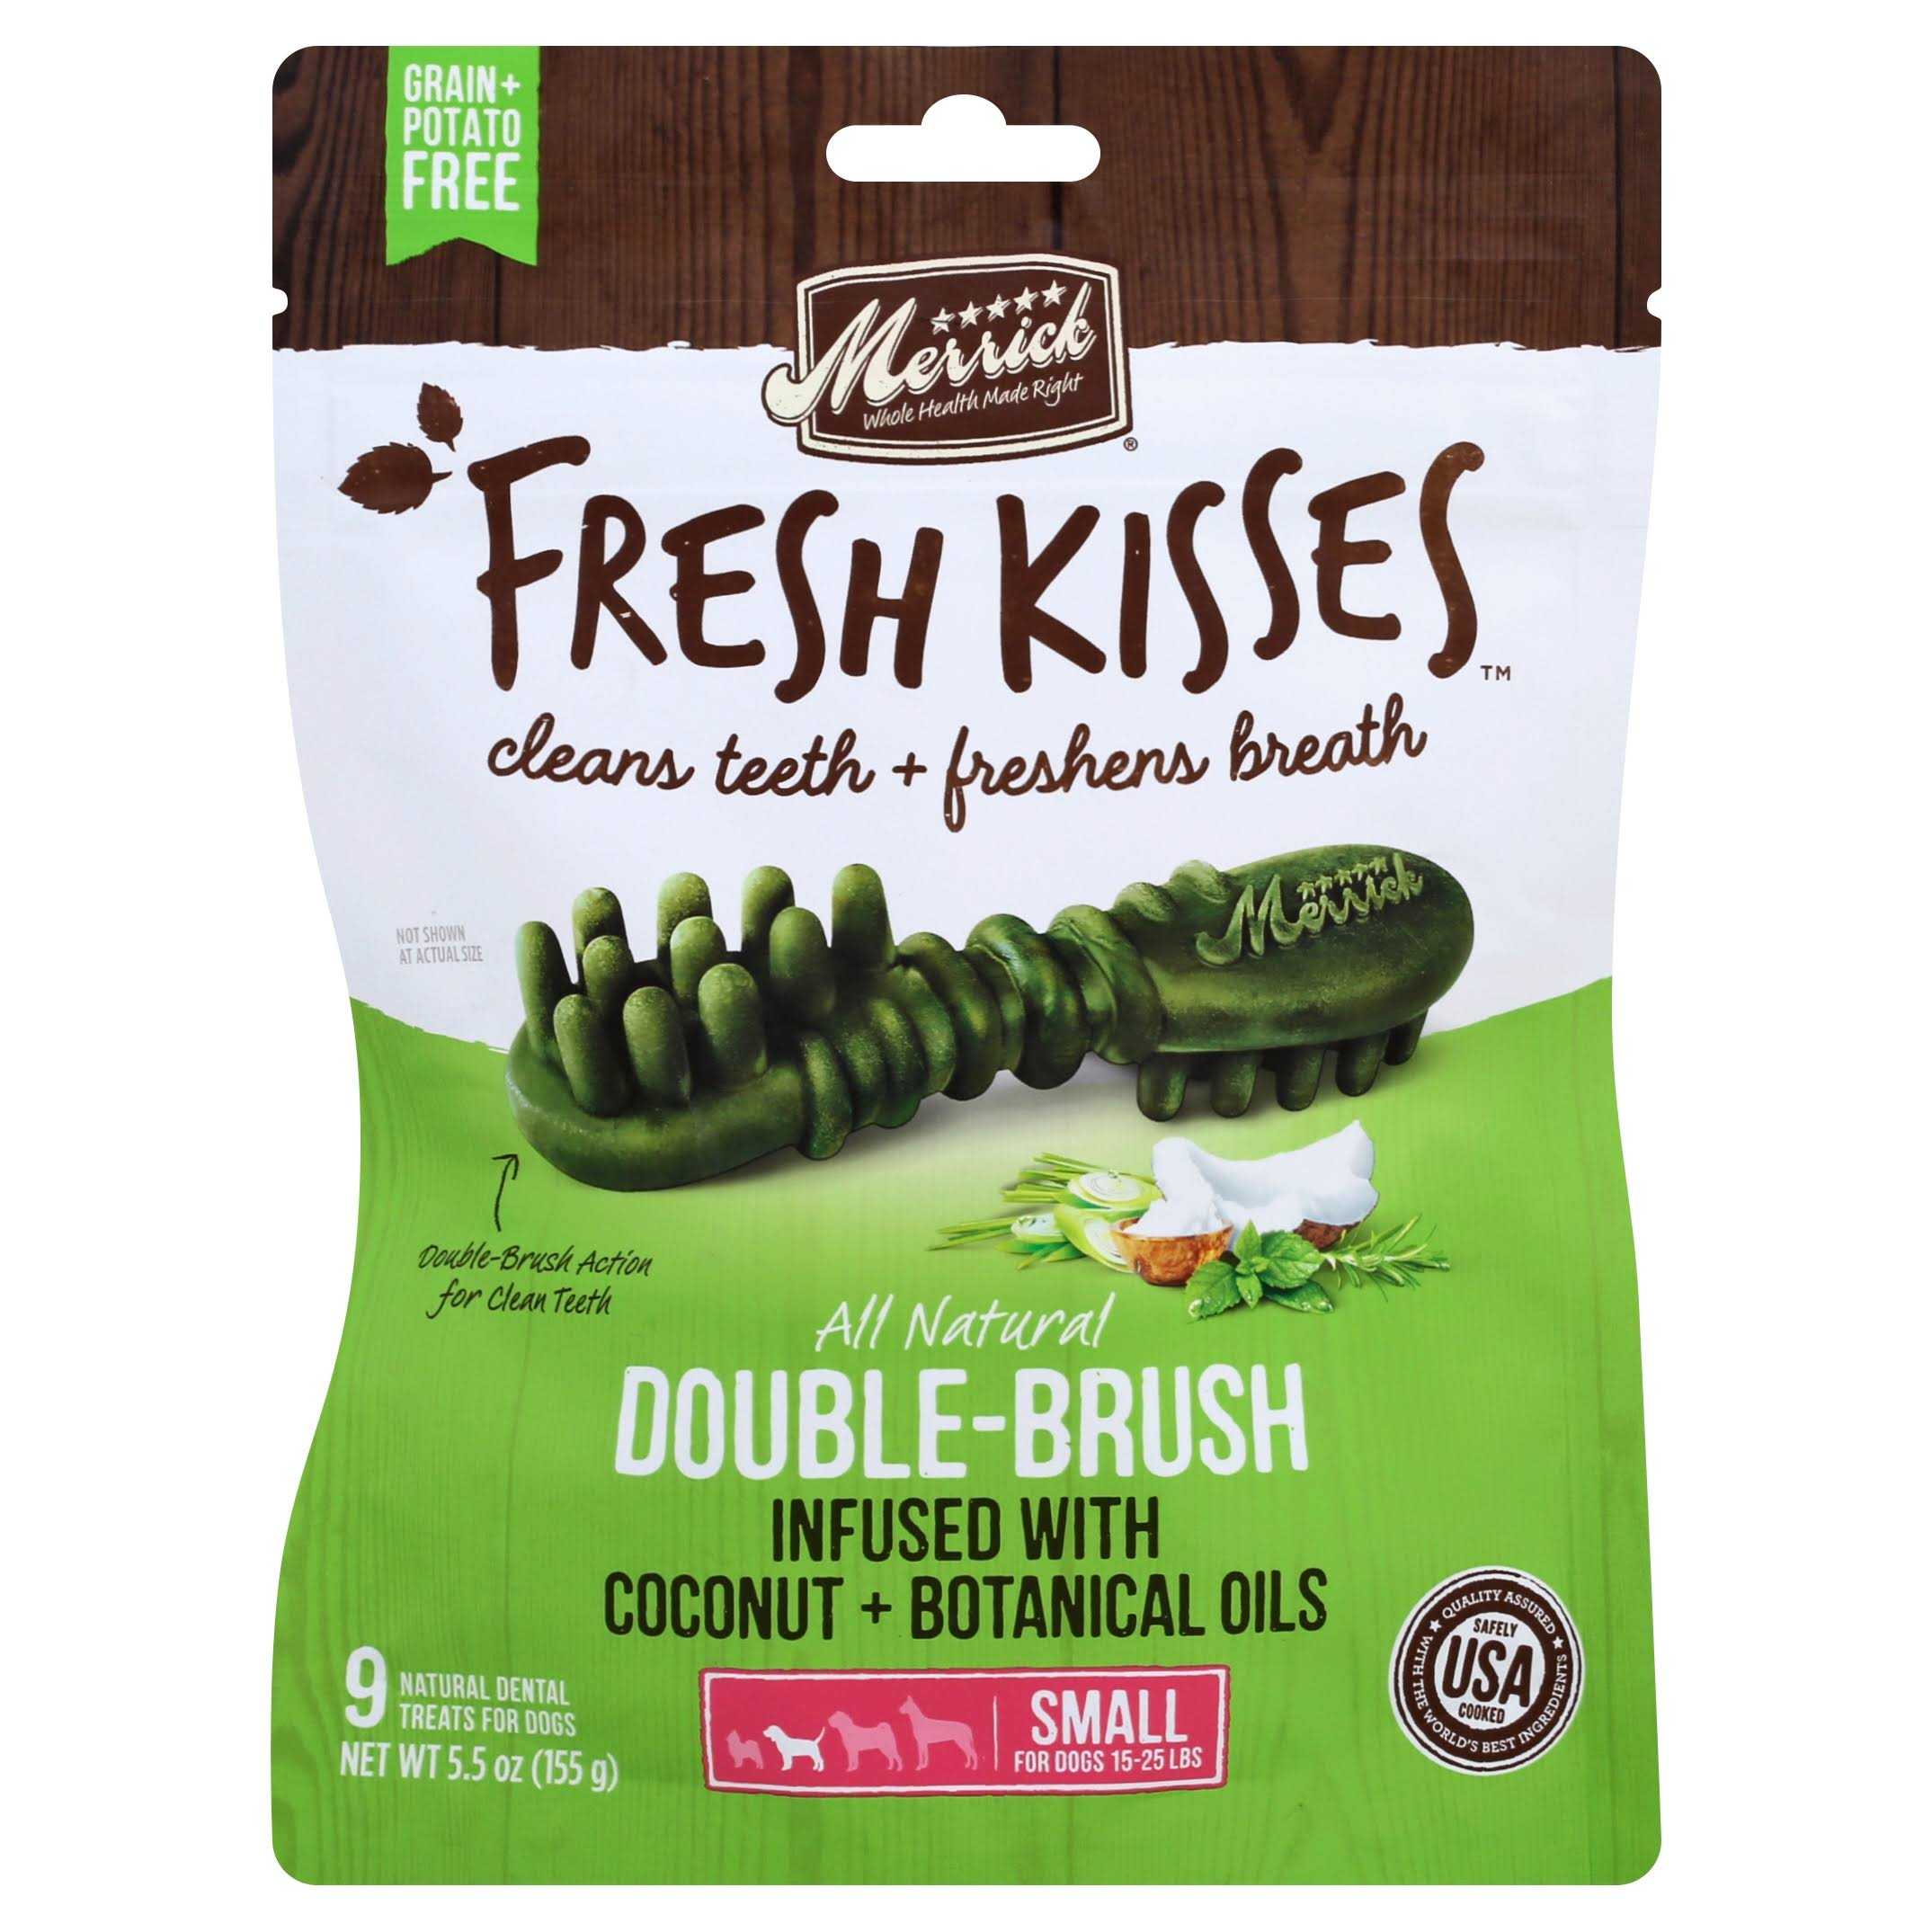 Merrick Fresh Kisses Dental Treats, for Dogs, 15-25 lbs, Coconut + Botanical Oils, Double-Brush, Small - 9 treats, 5.5 oz